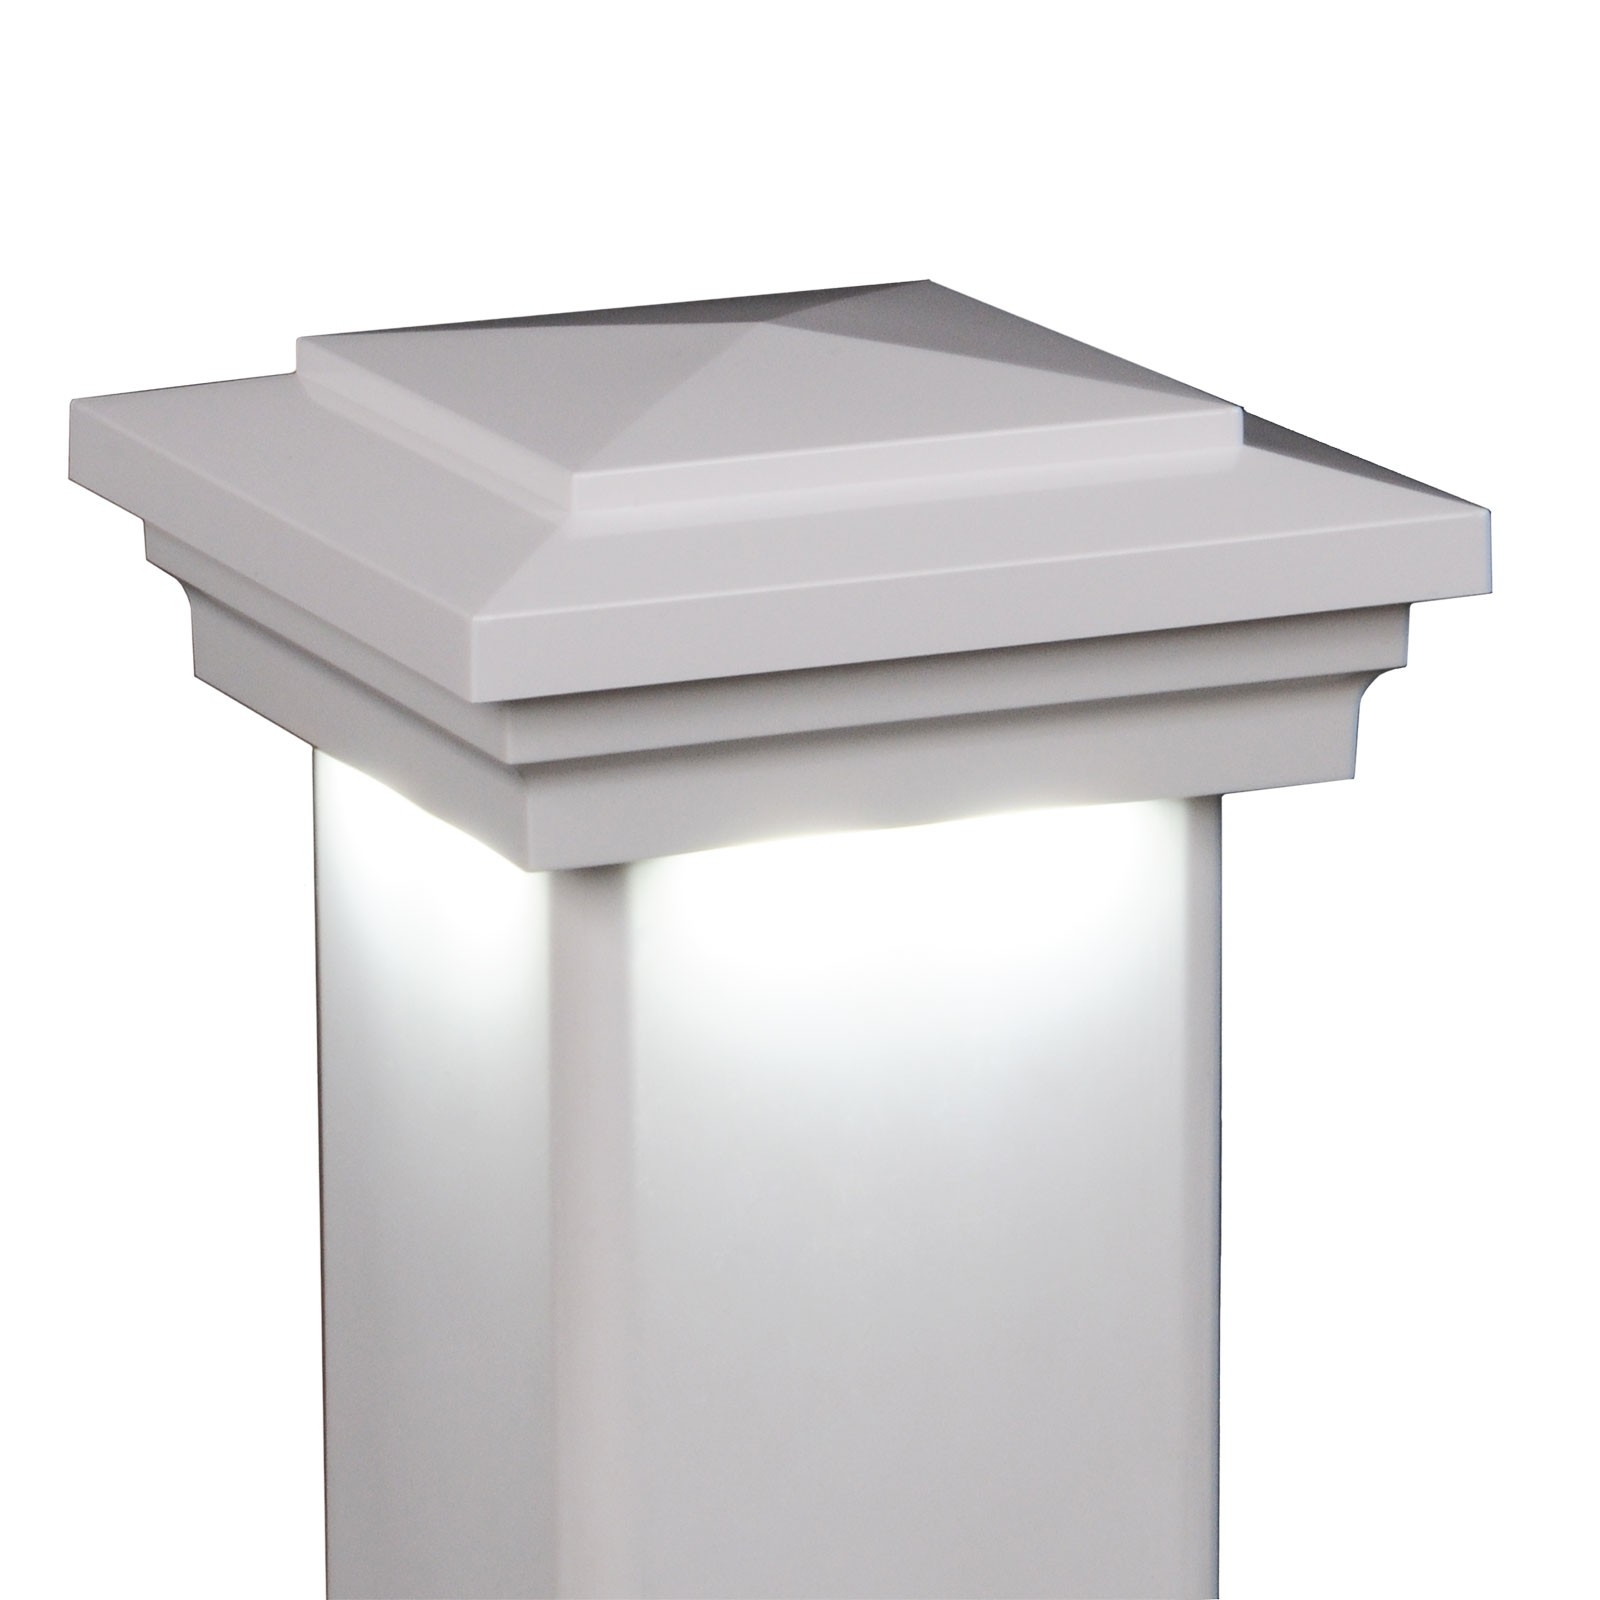 "5"" Sq. Cape May Downward Low Voltage Led Lighted Post Cap – White Intended For Most Up To Date Low Voltage Led Post Lights (Gallery 7 of 20)"